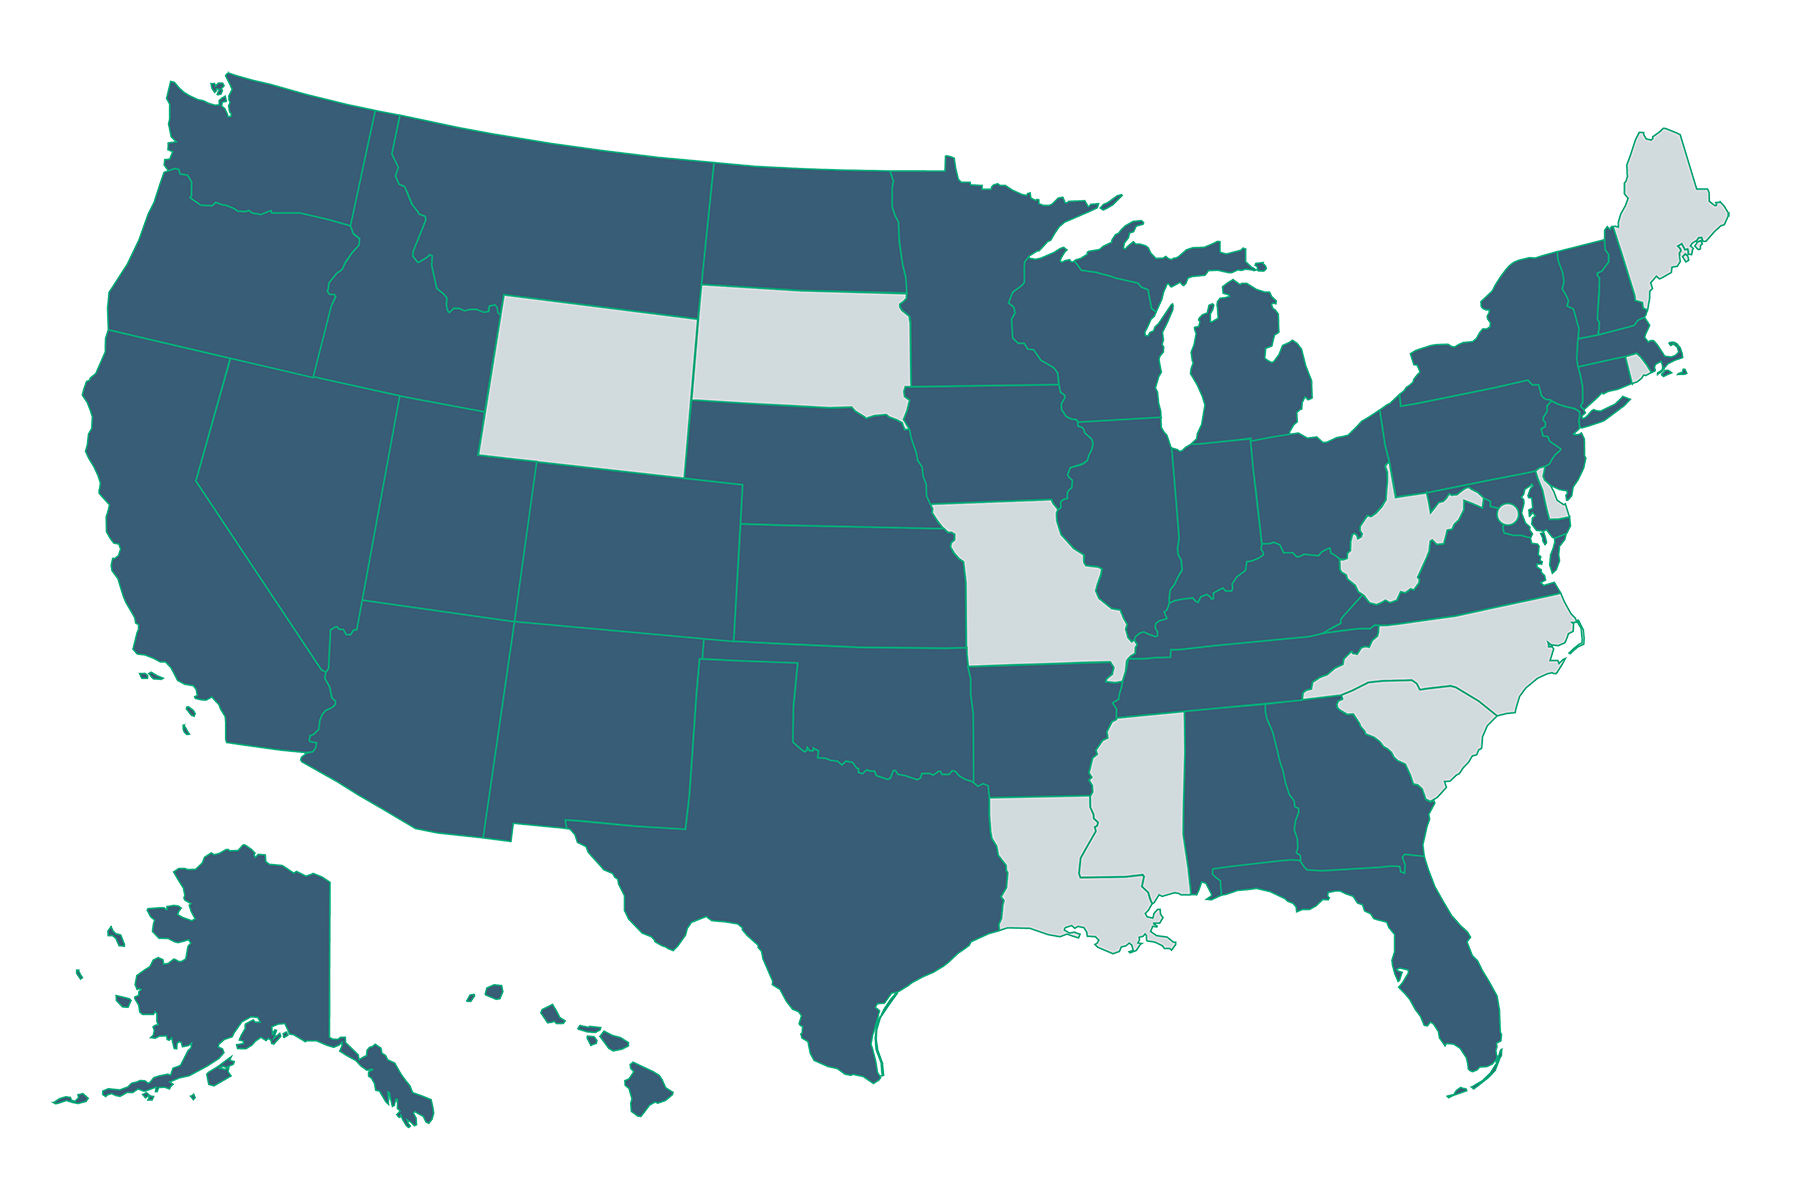 Health Care Climate Council Map 2021